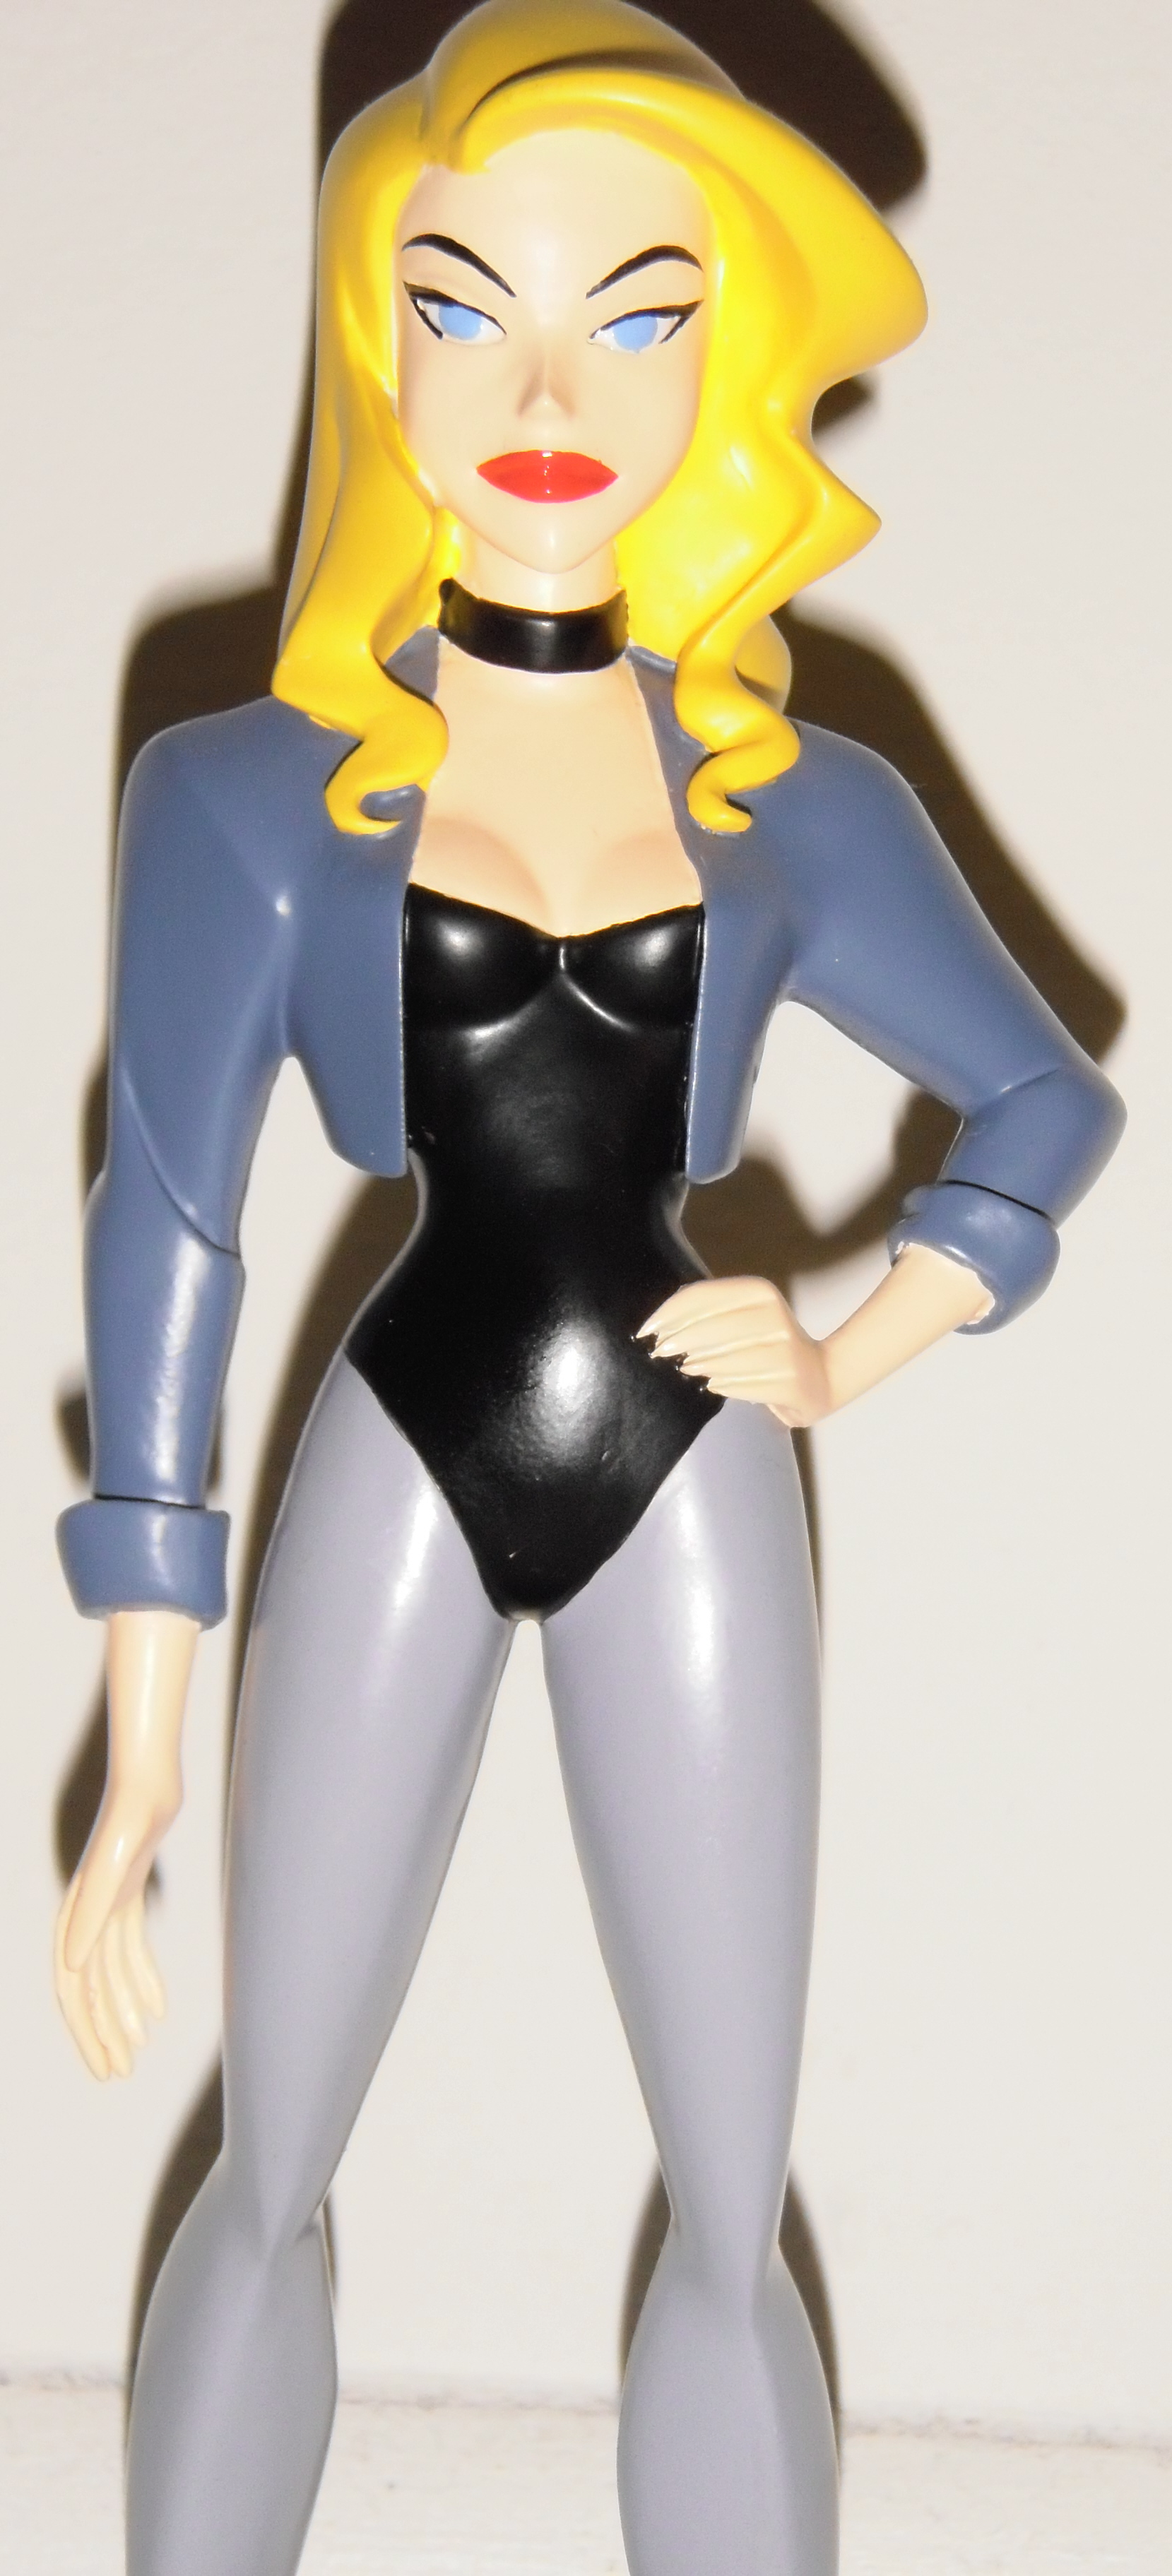 Sculpted by John G. Mathews. DC Direct presents the second maquette based on Cartoon Network's hit animated series Justice League Unlimited! The Black Canary, a stunning siren, possesses a sonic...